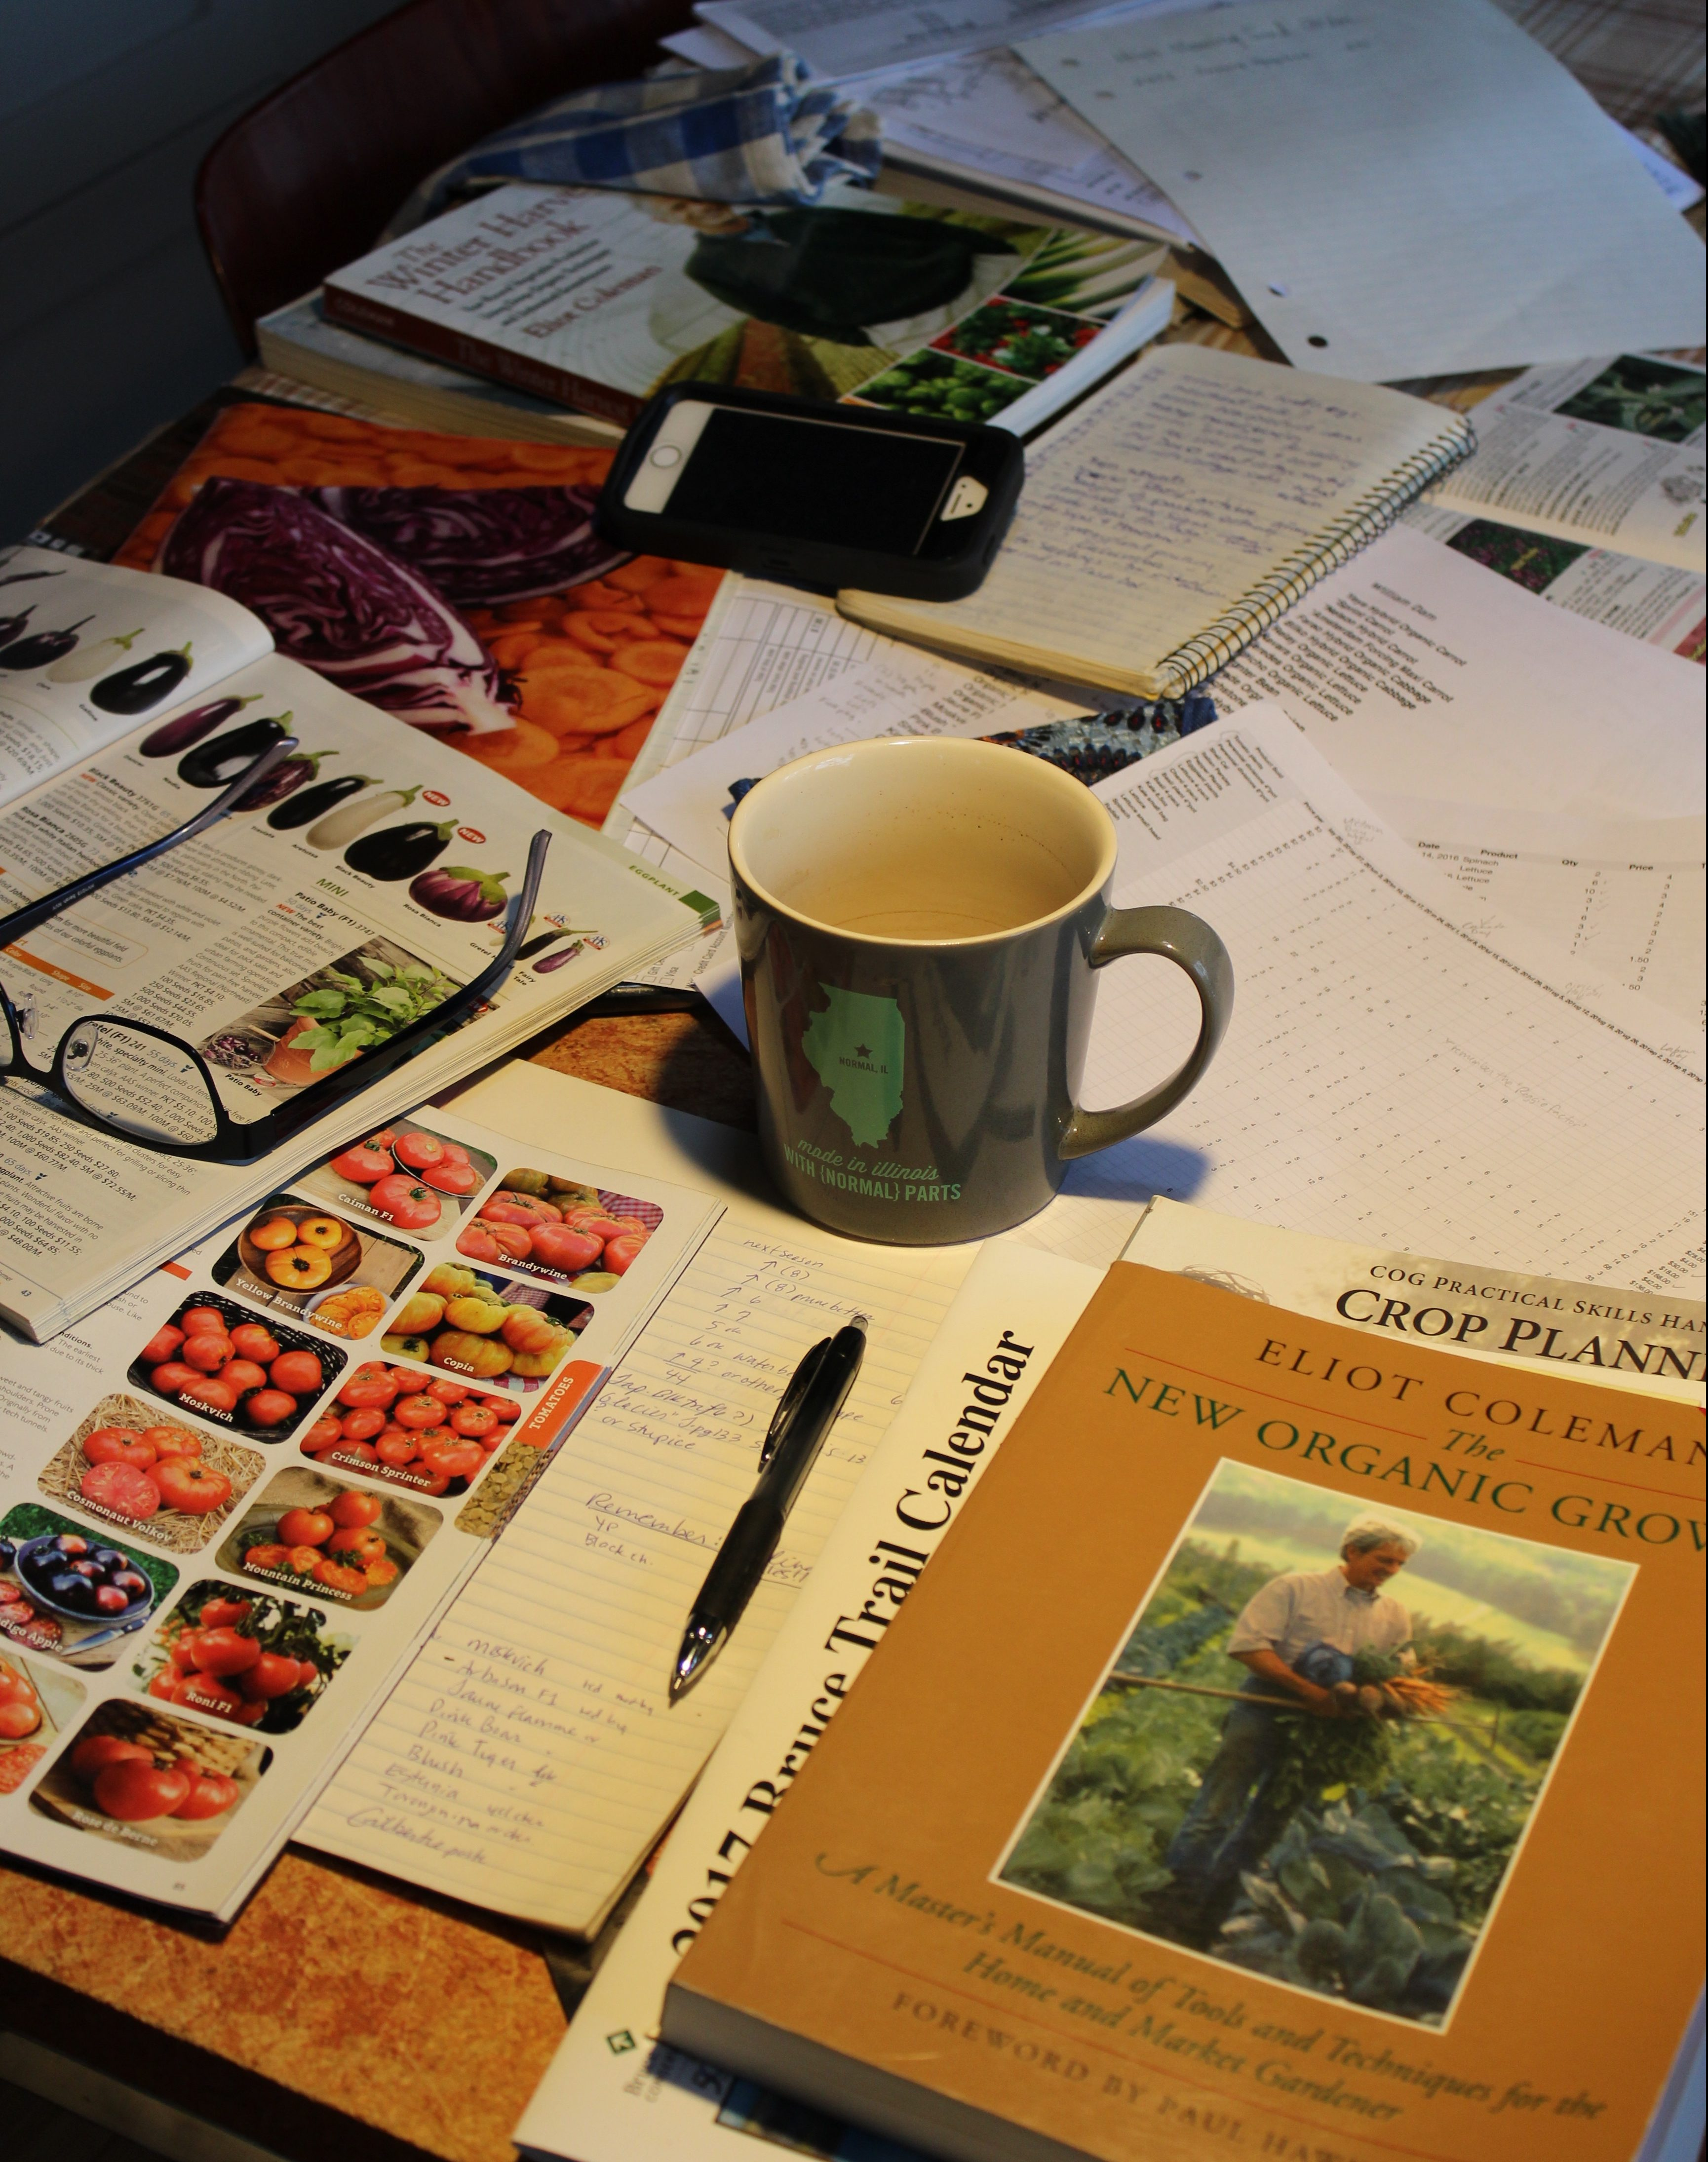 garden planning books and catalogues